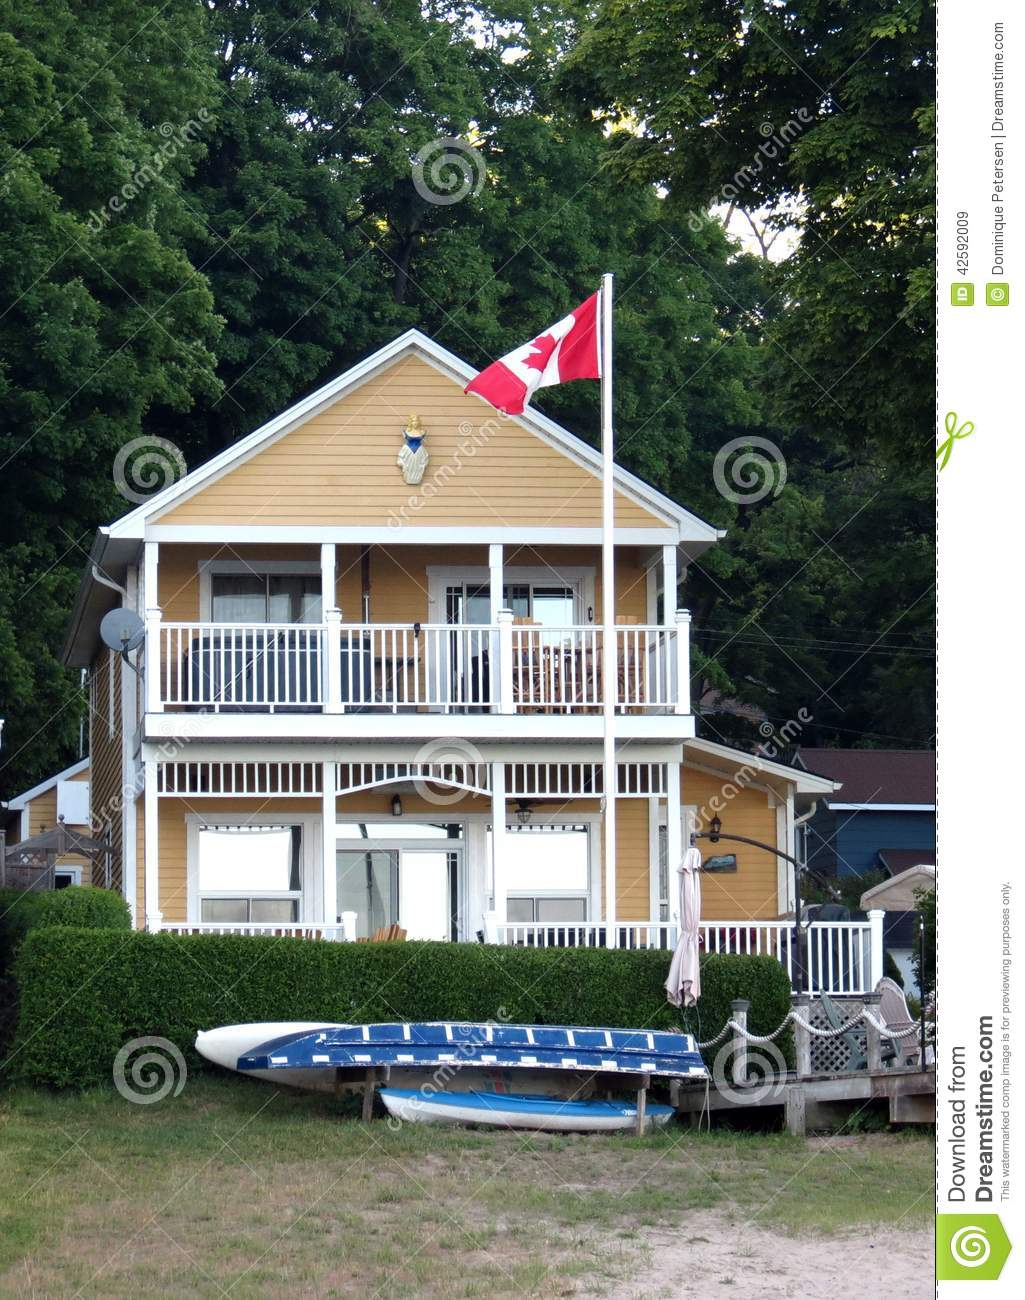 Beach house stock photo image 42592009 for Two story house with balcony